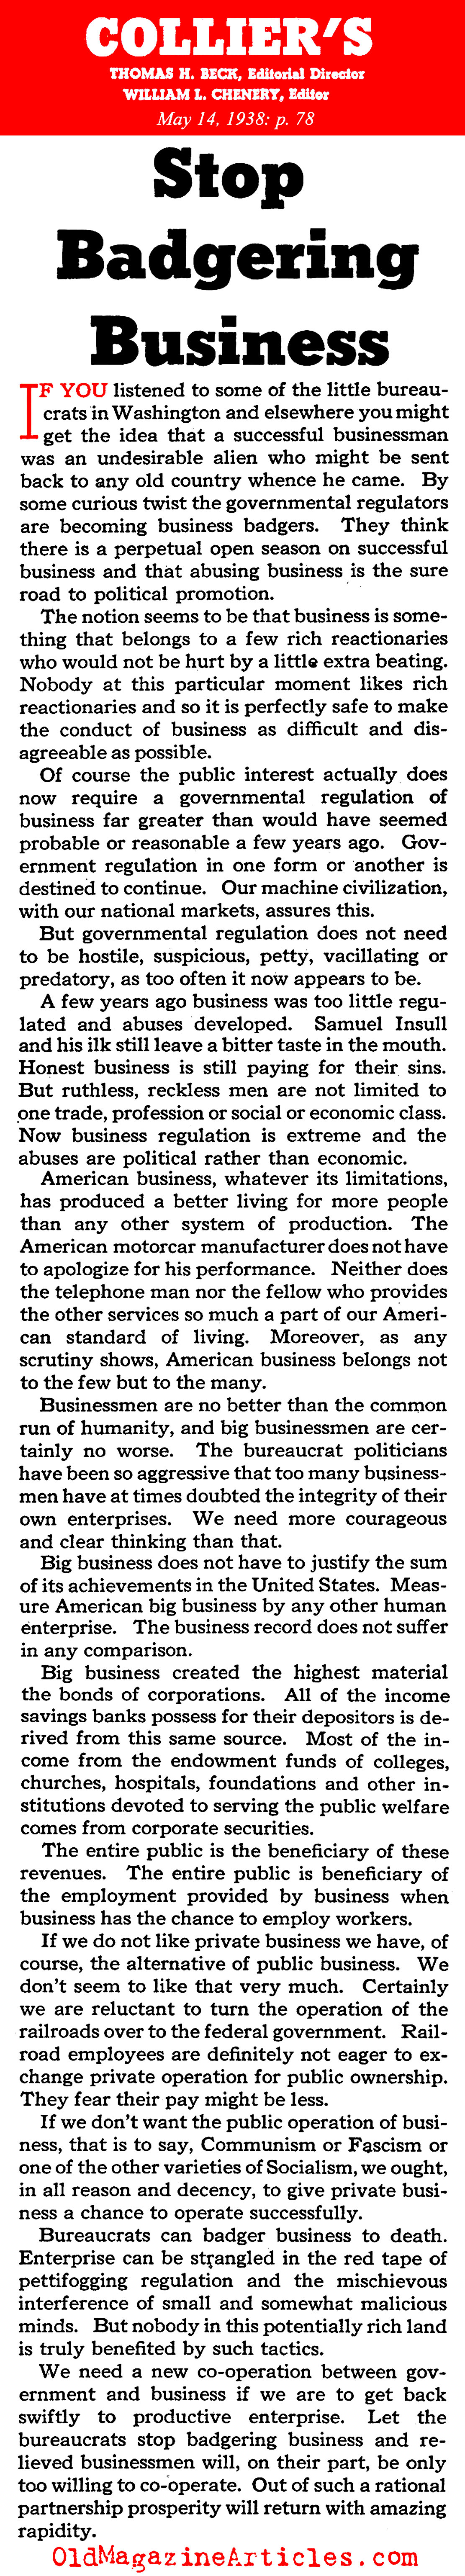 He was Too Tough on Businesses (Collier's Magazine, 1938)